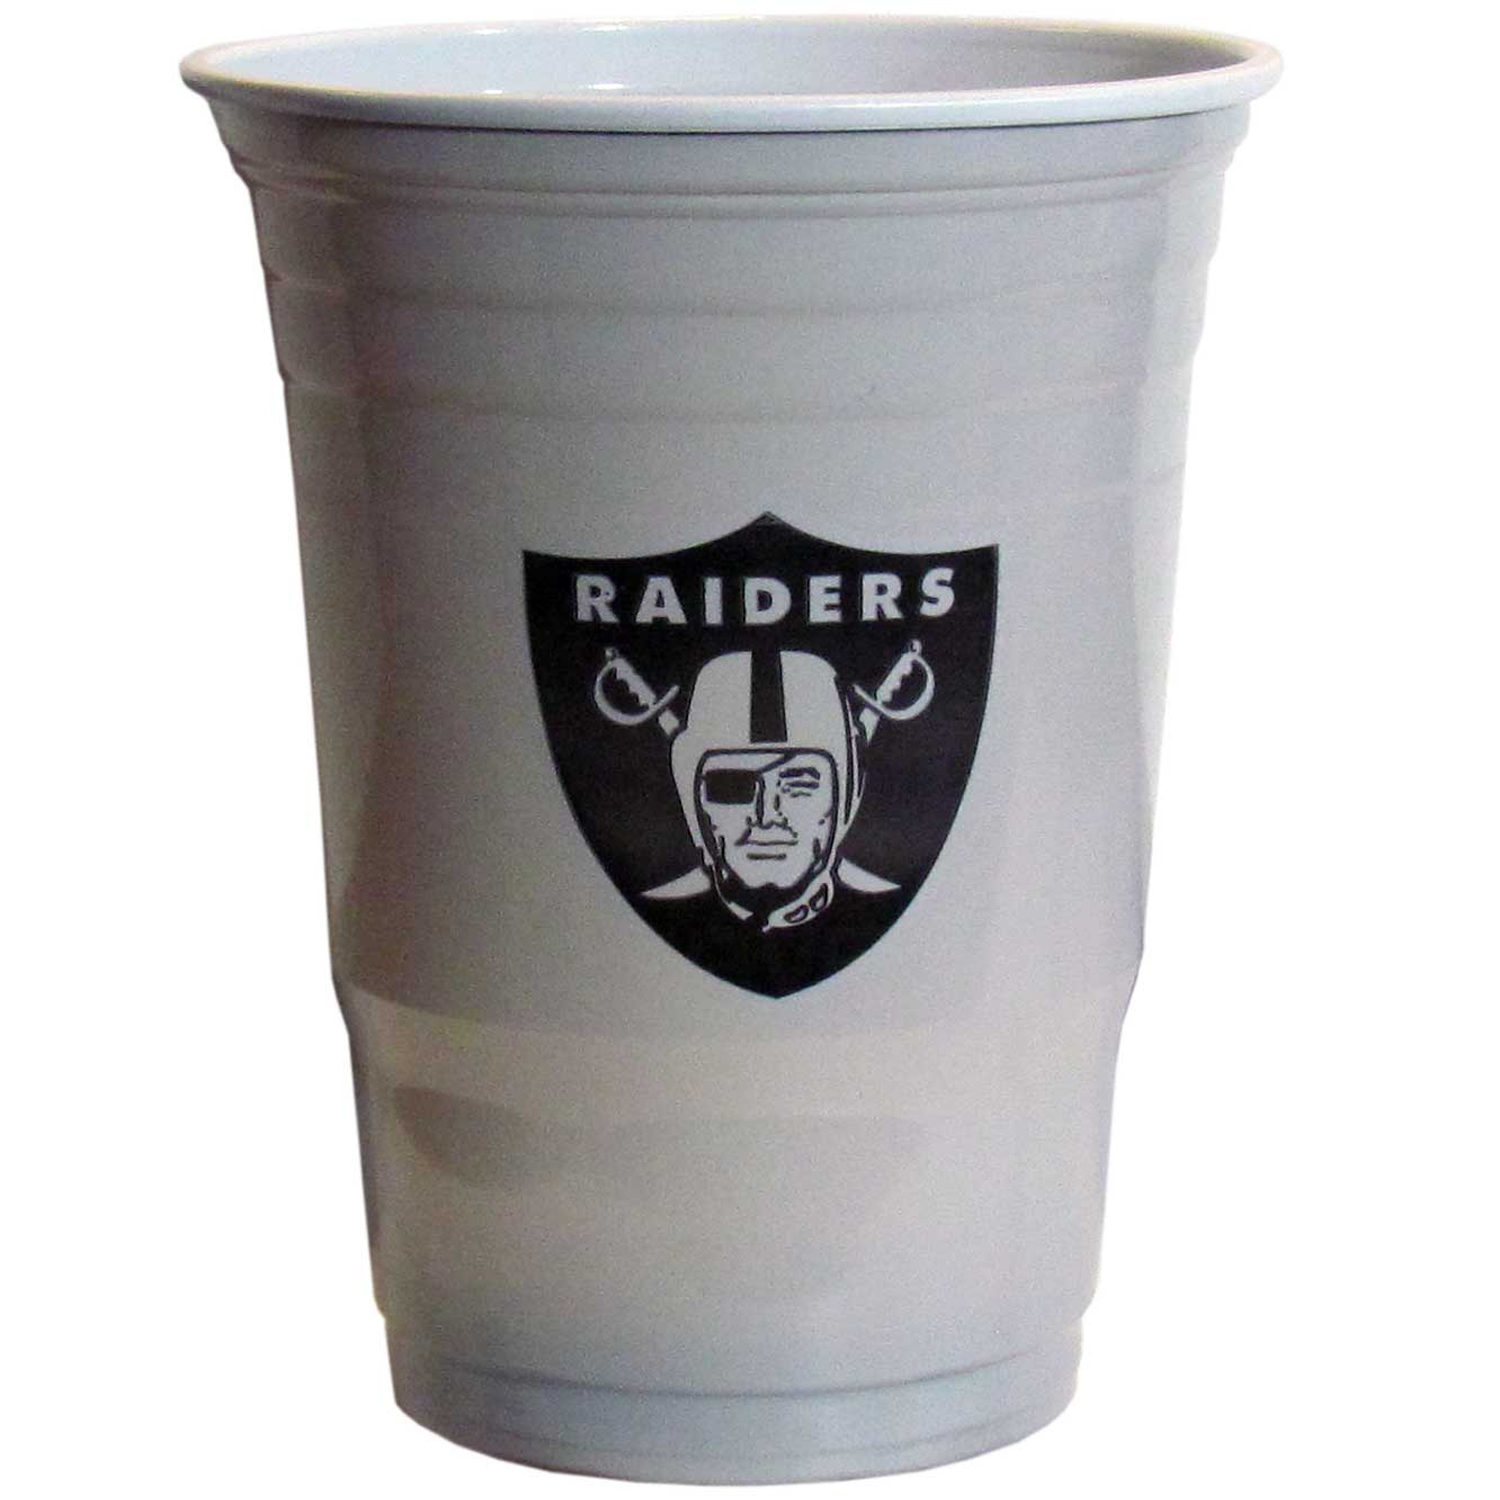 Oakland Raiders Plastic Game Day Cups 2 sleeves of 18 (36 Cups) - Our 18 ounce game day cups are what every tailgating or backyard events needs! The cups feature a big Oakland Raiders logo so you can show off your team pride. The popular 18 ounce size is perfect for drinks or ping pong balls! 2 sleeves of 18 cups, 36 cups in total.